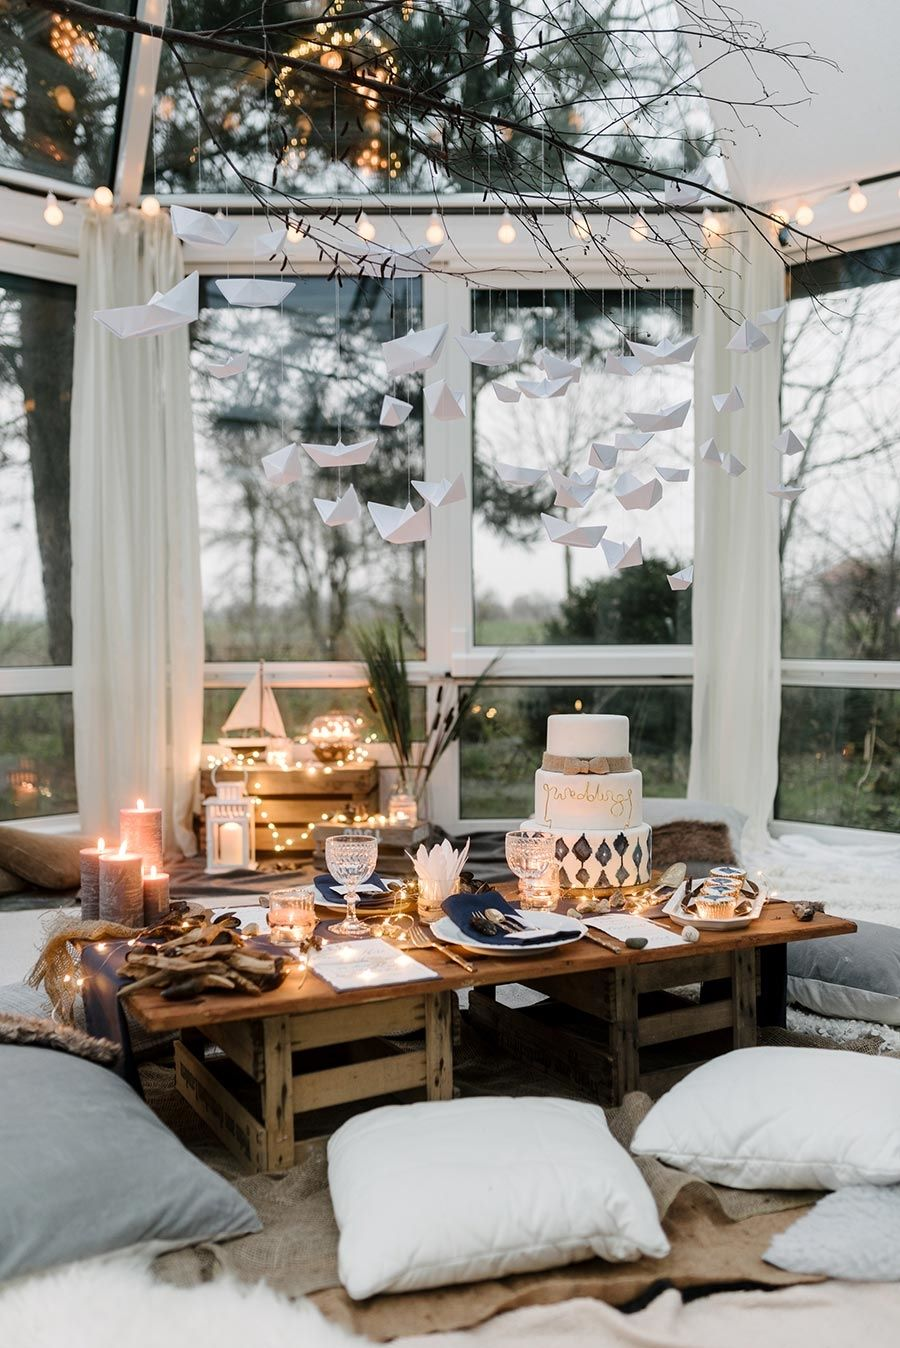 Life Styled :: the Hygge home | Airbnb | Pinterest | Hygge ...